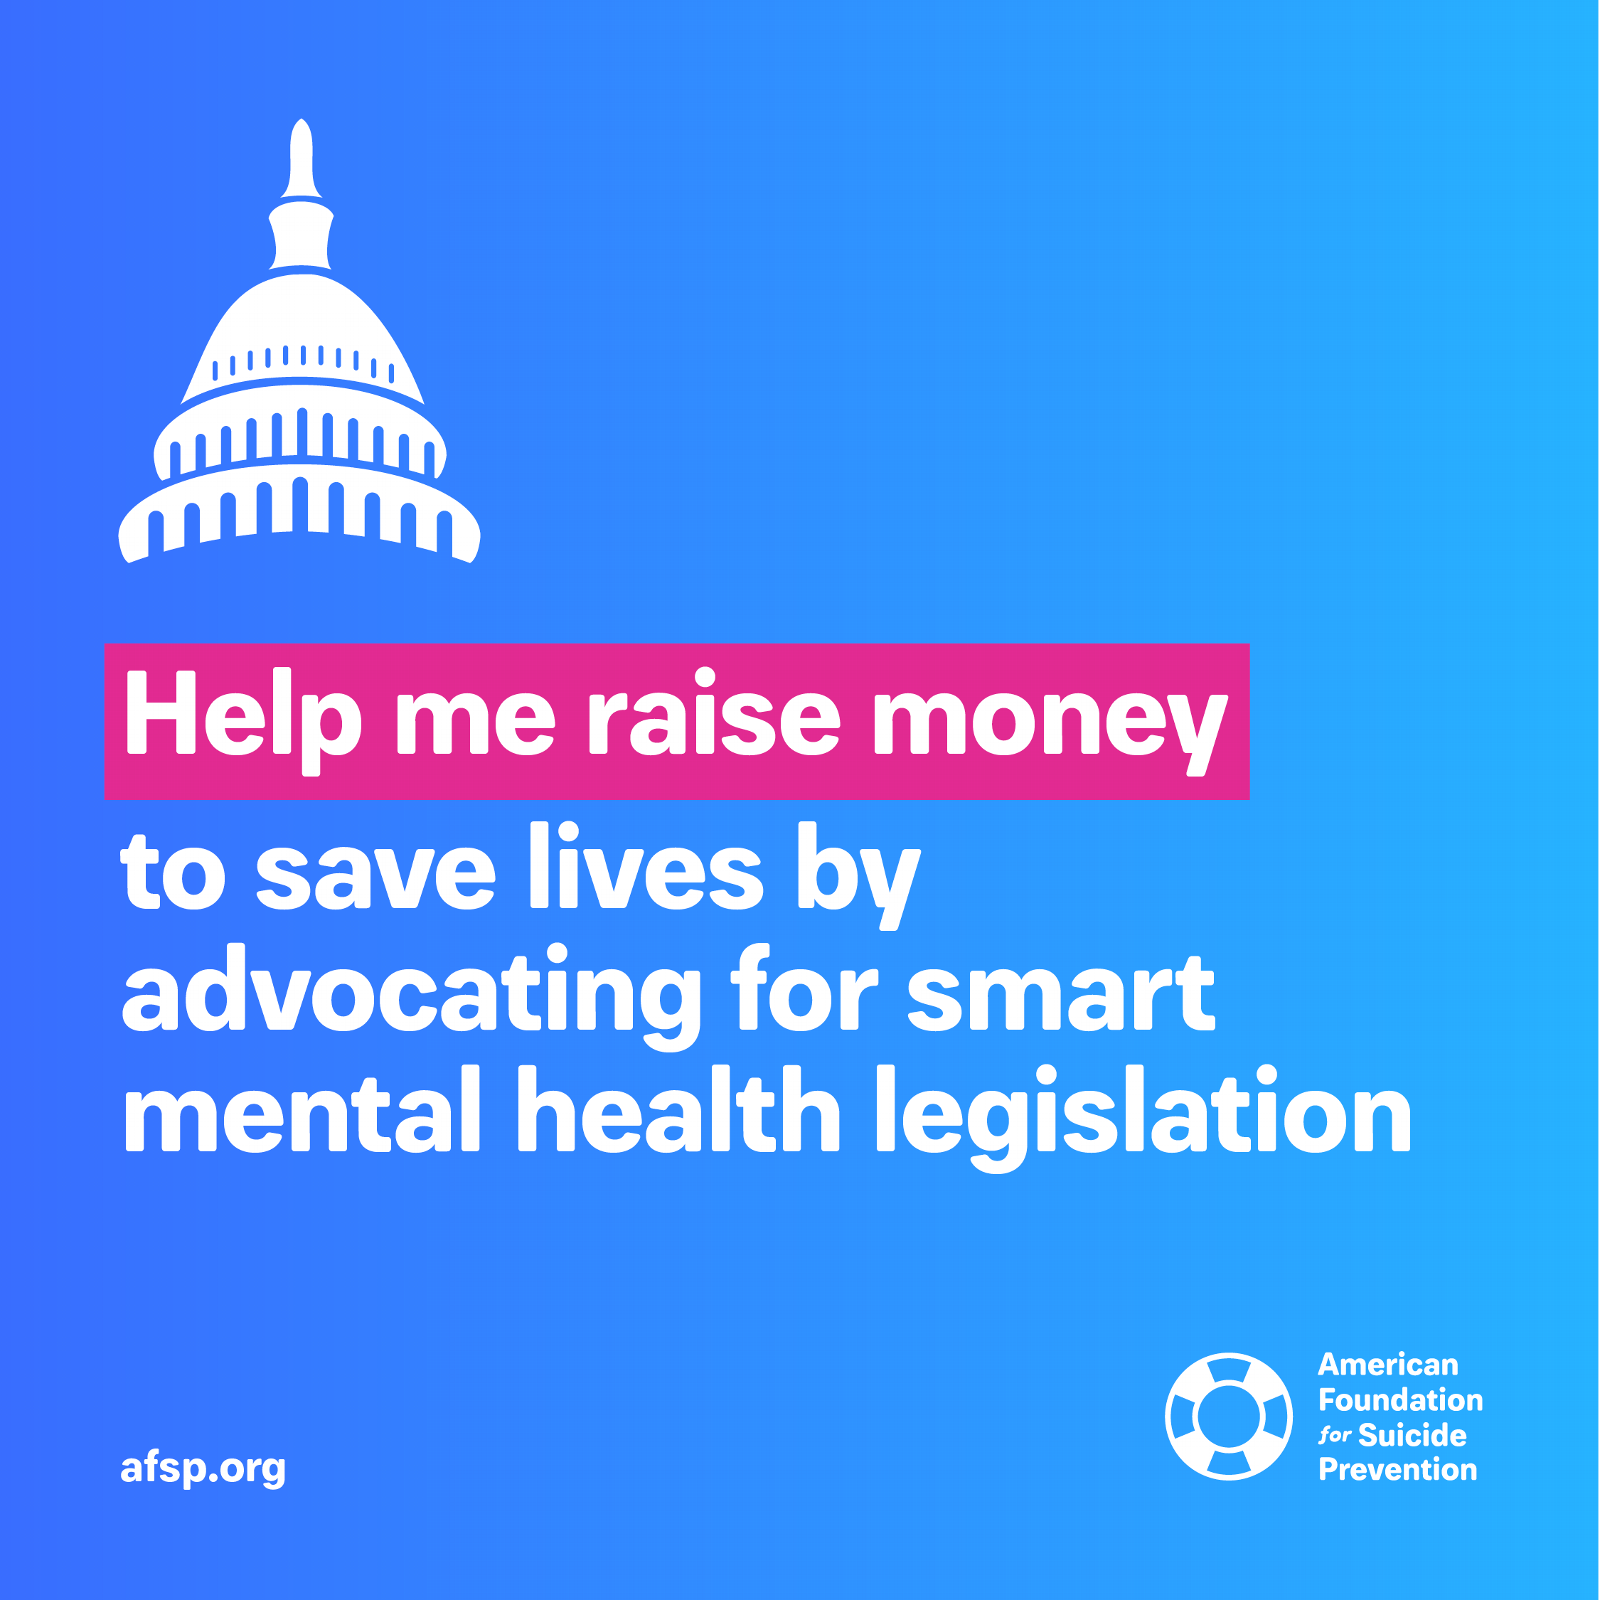 Help me raise money to save lives by advocating for smart mental health legislation